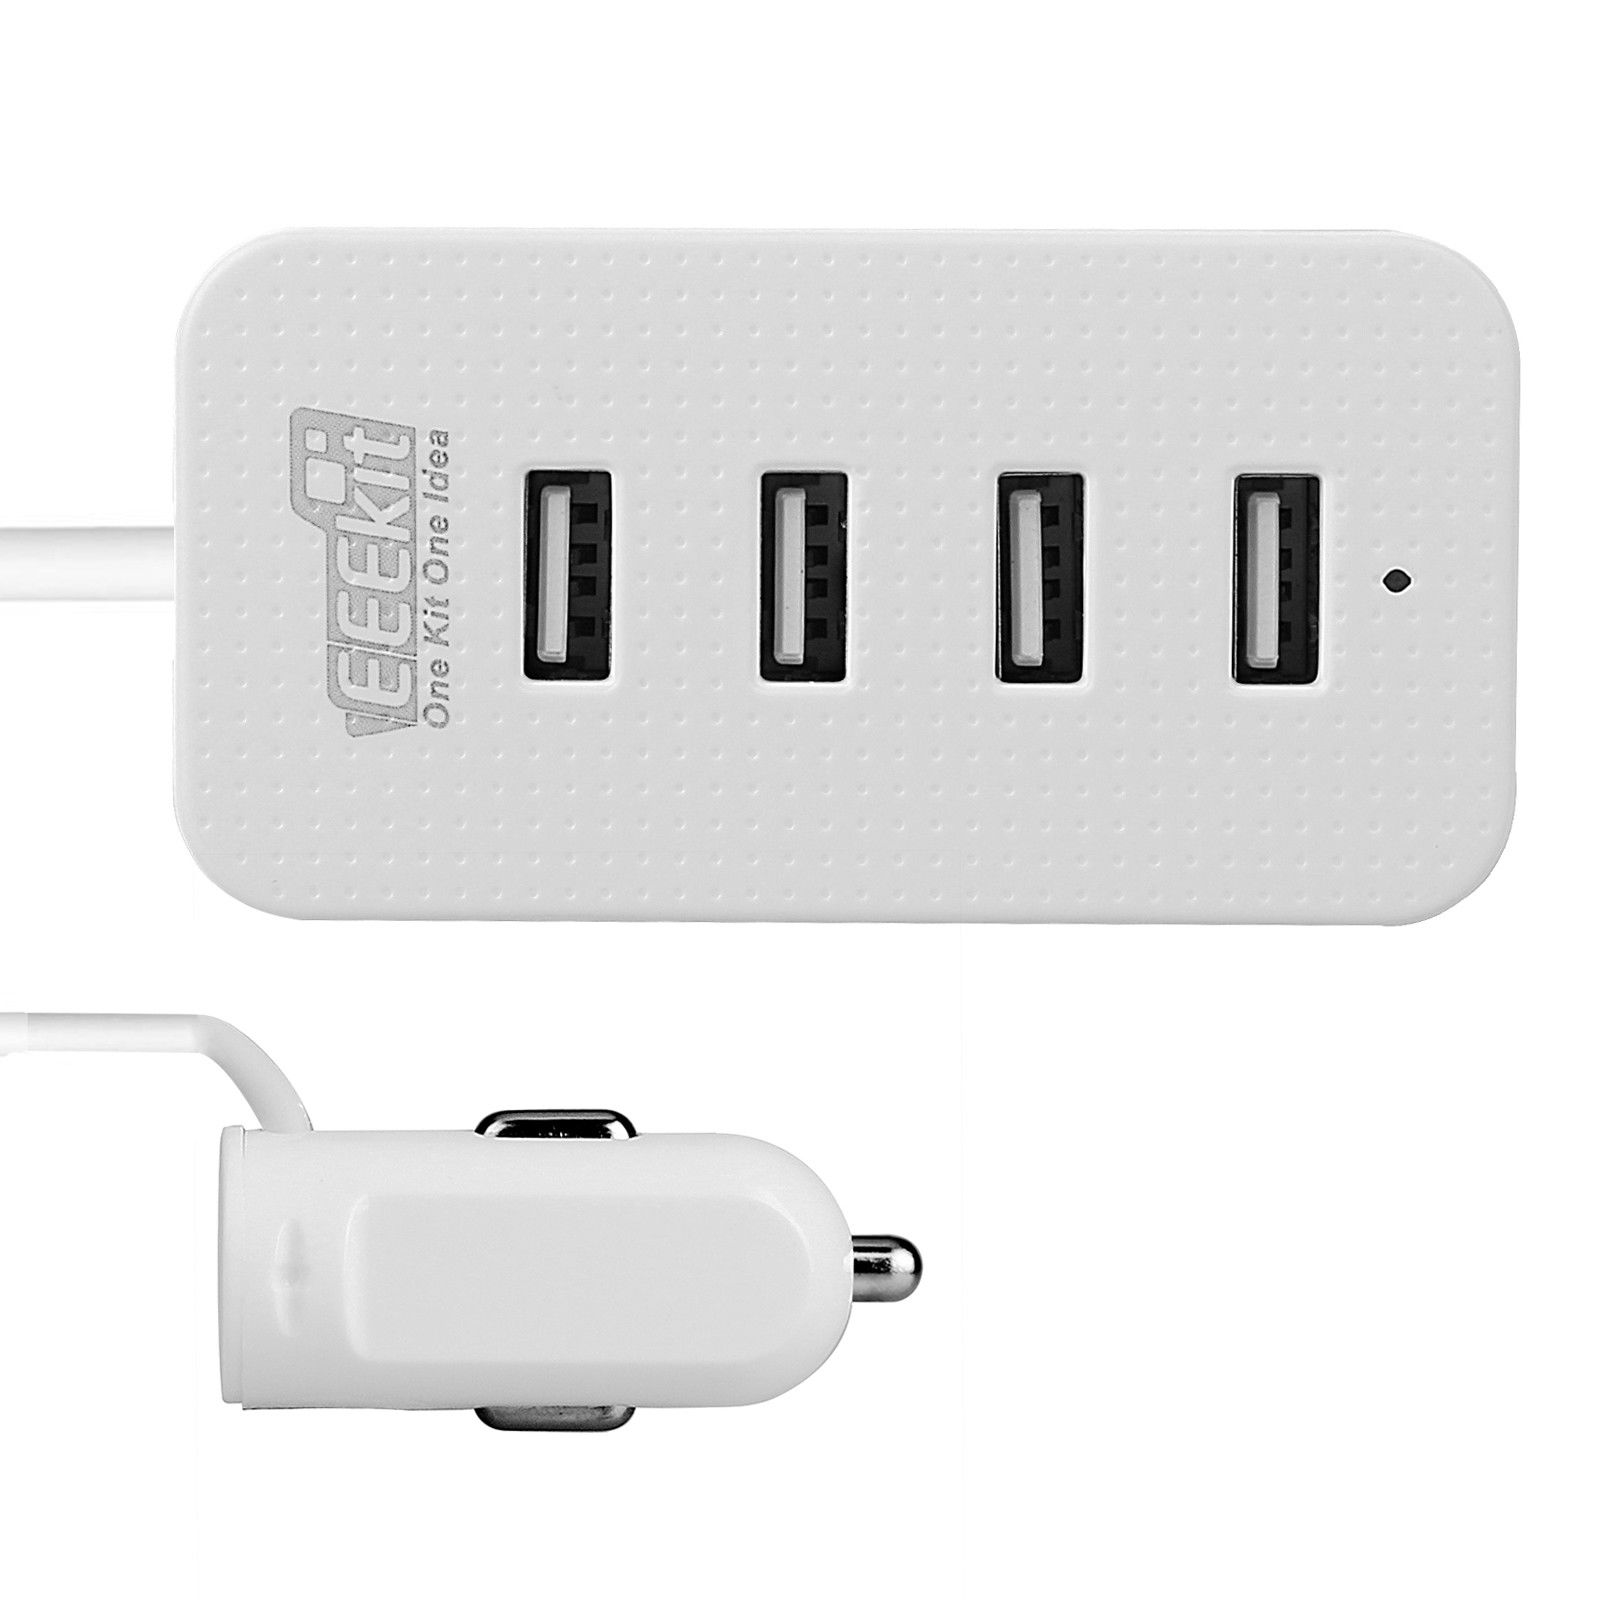 4-USB-Port-Smart-Car-Charger-Vehicle-Power-Charging-Adapter-for-Phone-Tablet-GPS thumbnail 11